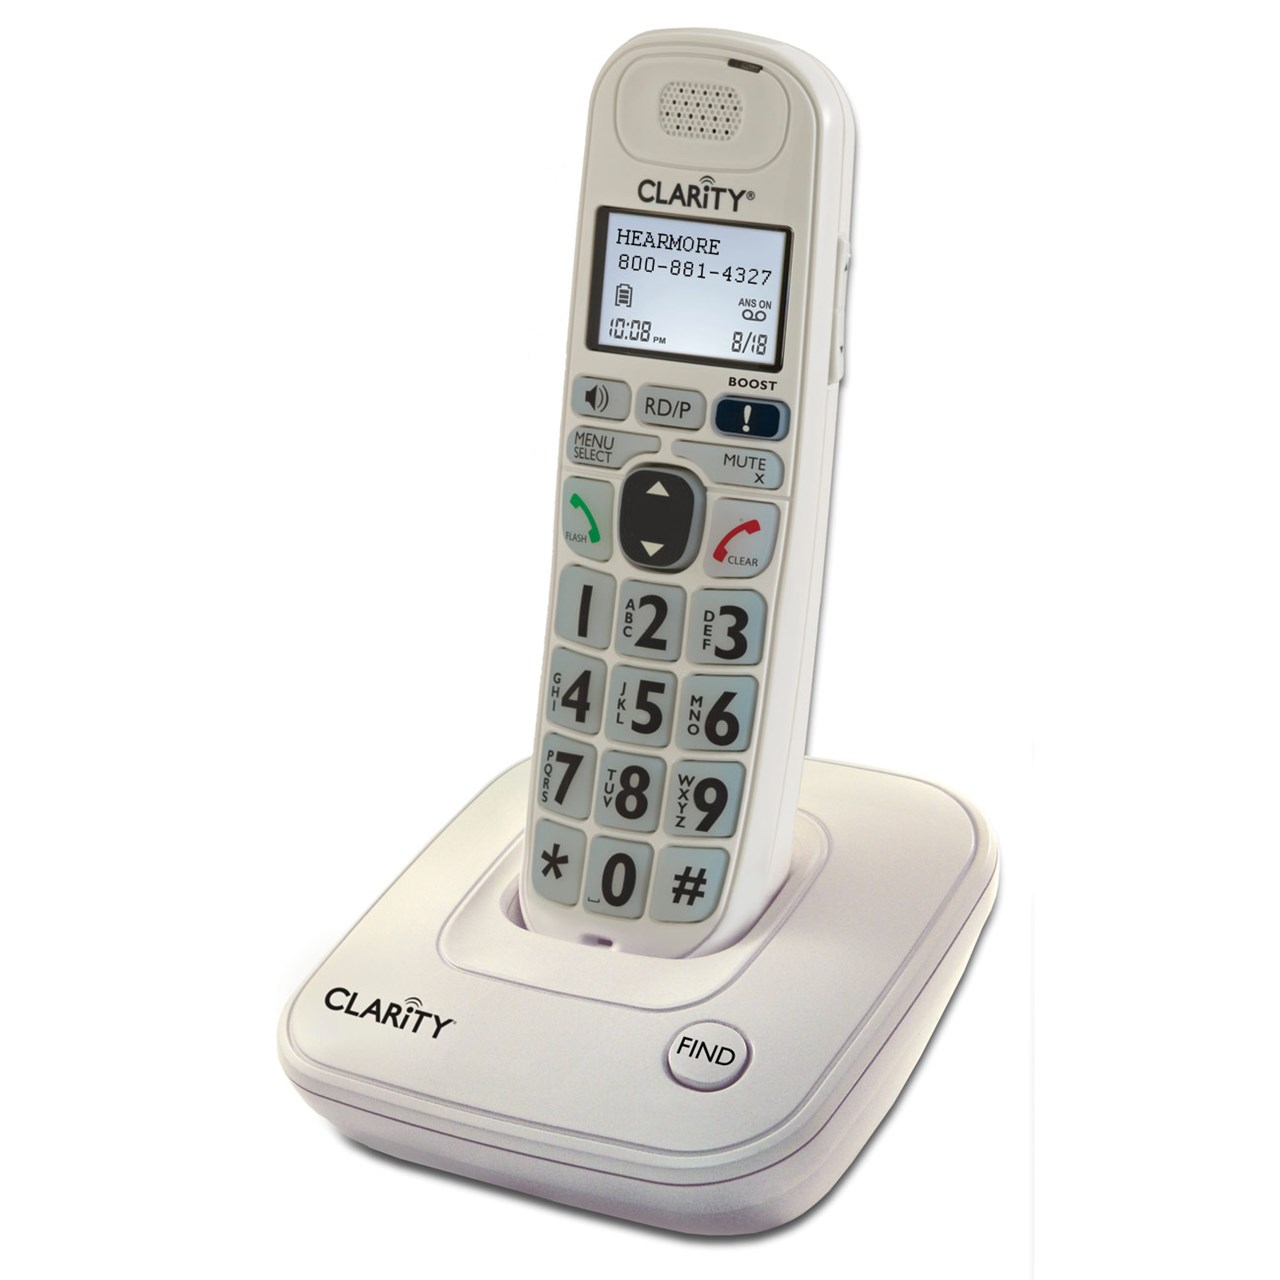 Clarity D704 Amplified Low Vision Big Button Cordless Phone - 40dB